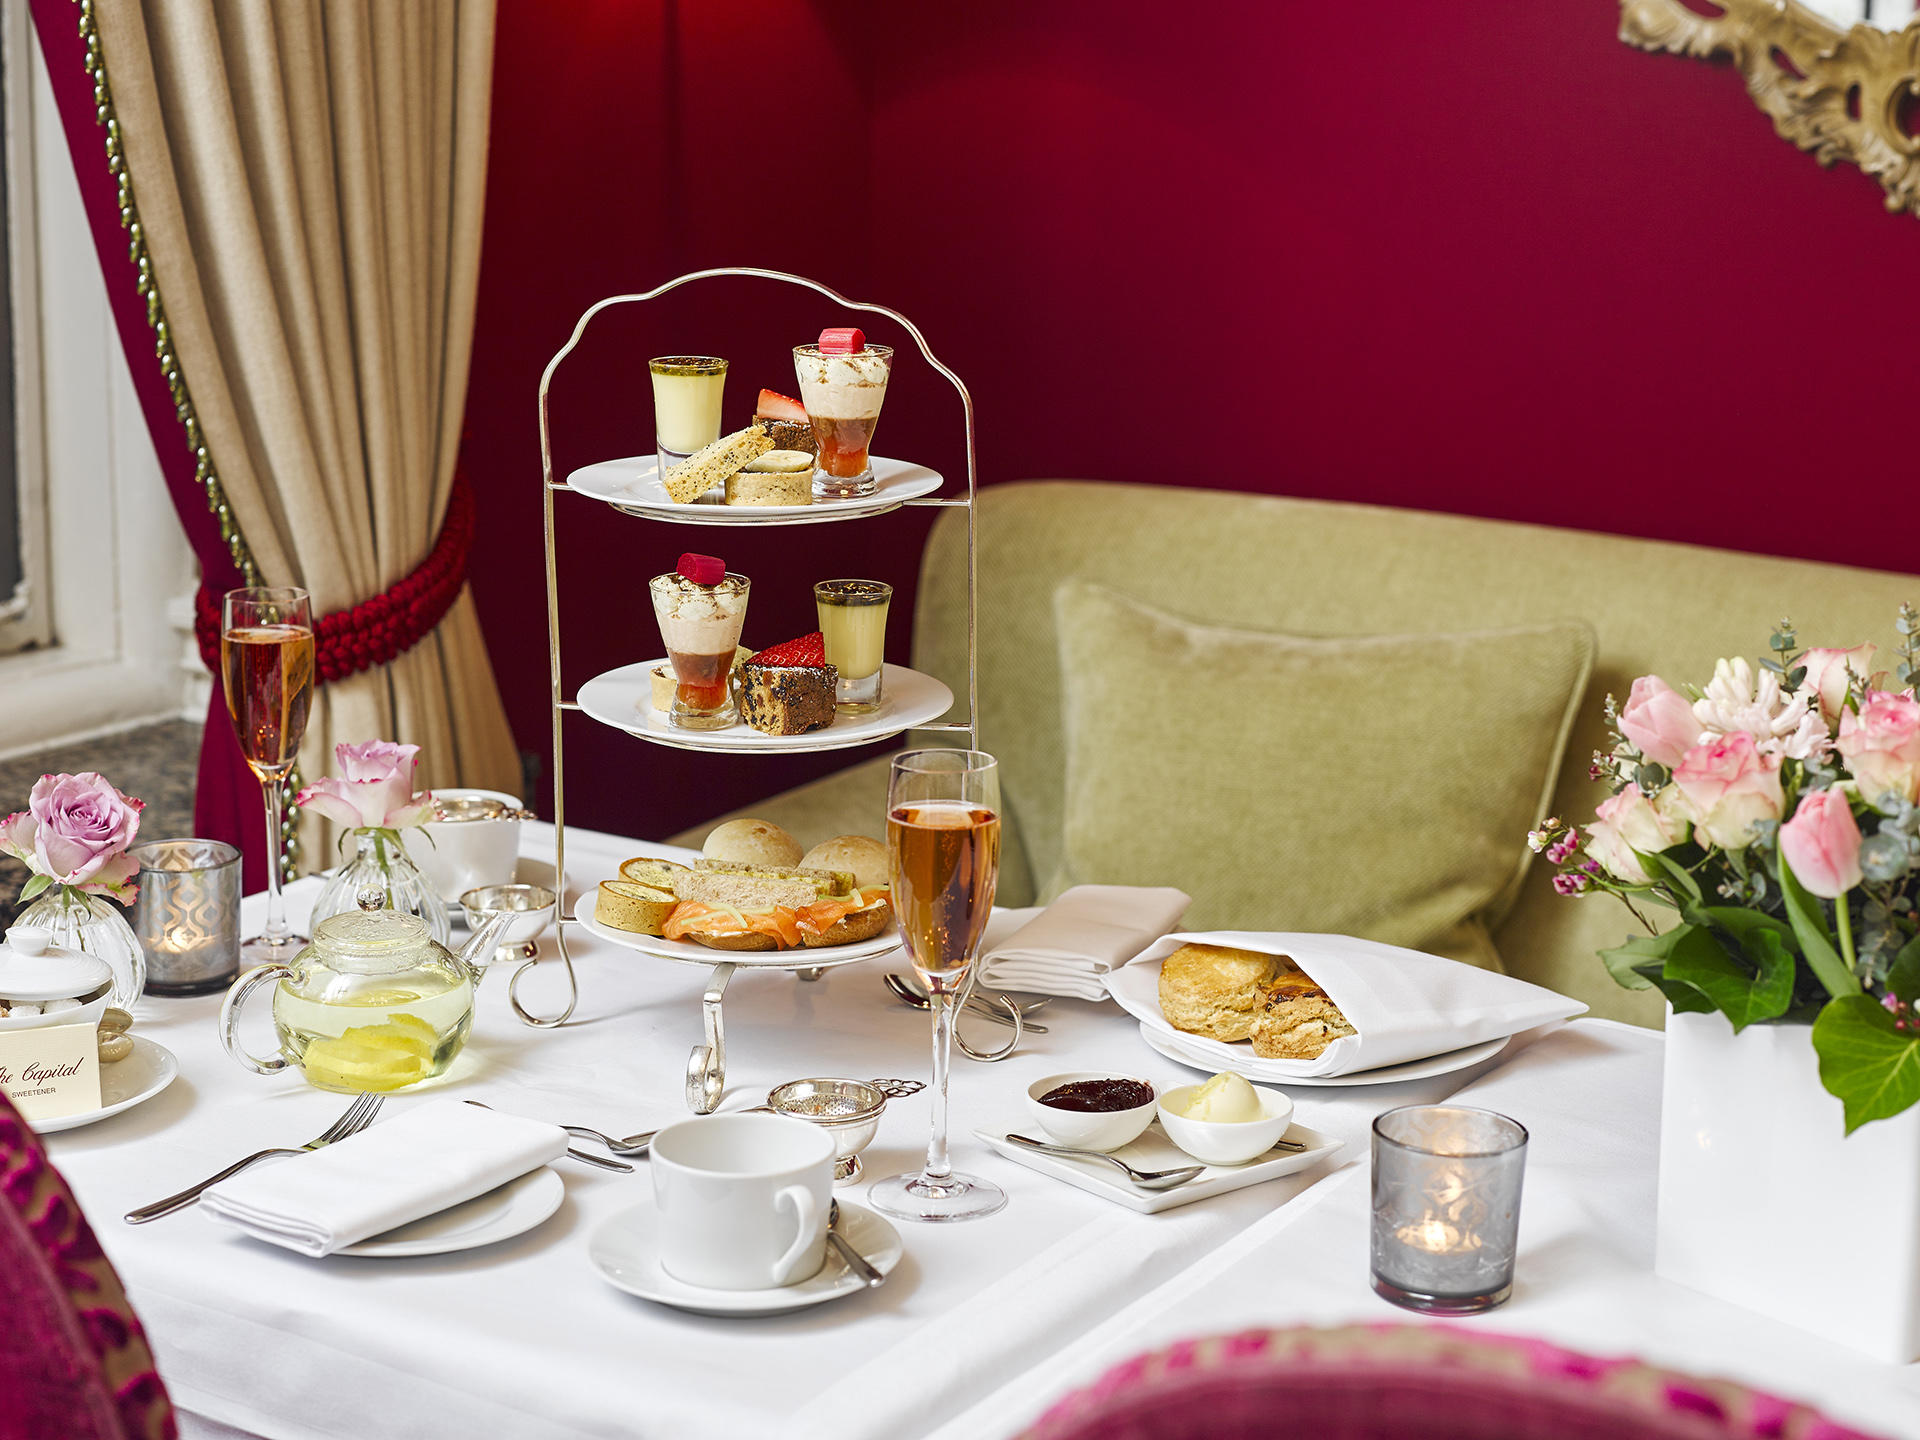 Afternoon Tea at Warwick Hotels and Resorts